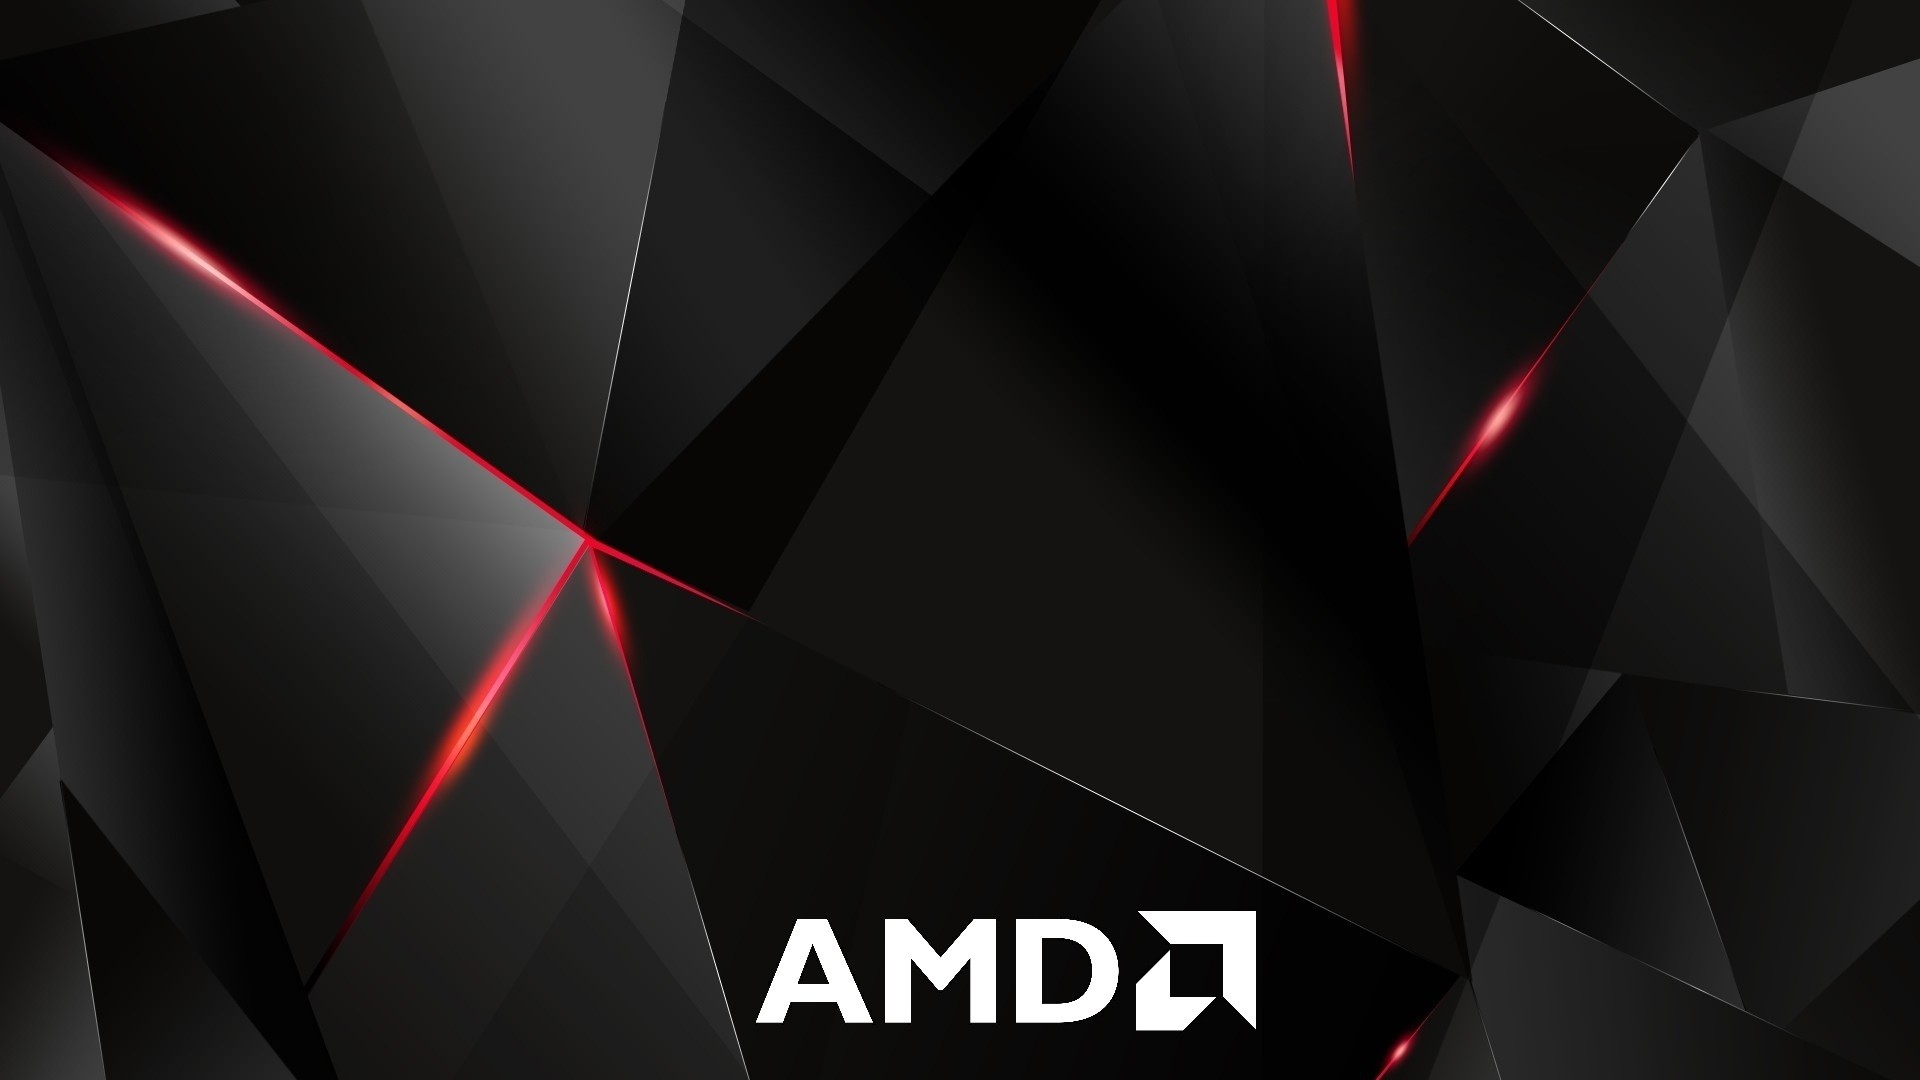 Amd Wallpaper 74 Pictures